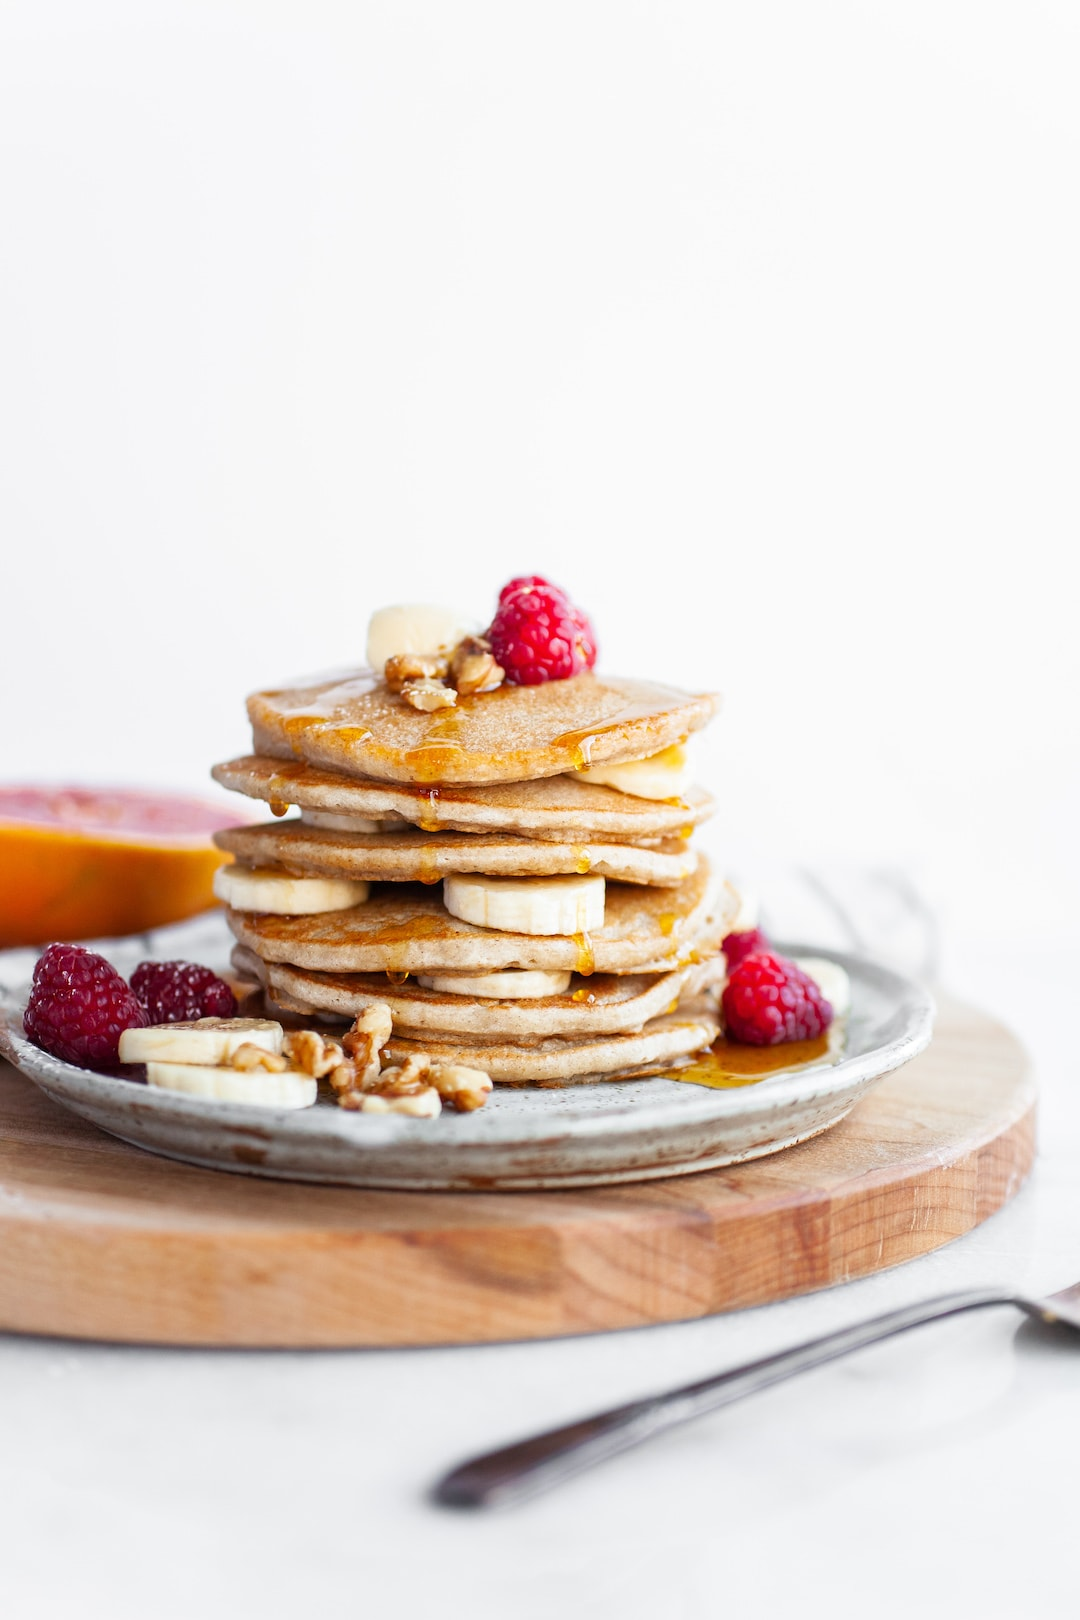 Perfect Vegan Buckwheat Pancakes stacked on a plate with raspberries and sliced banana